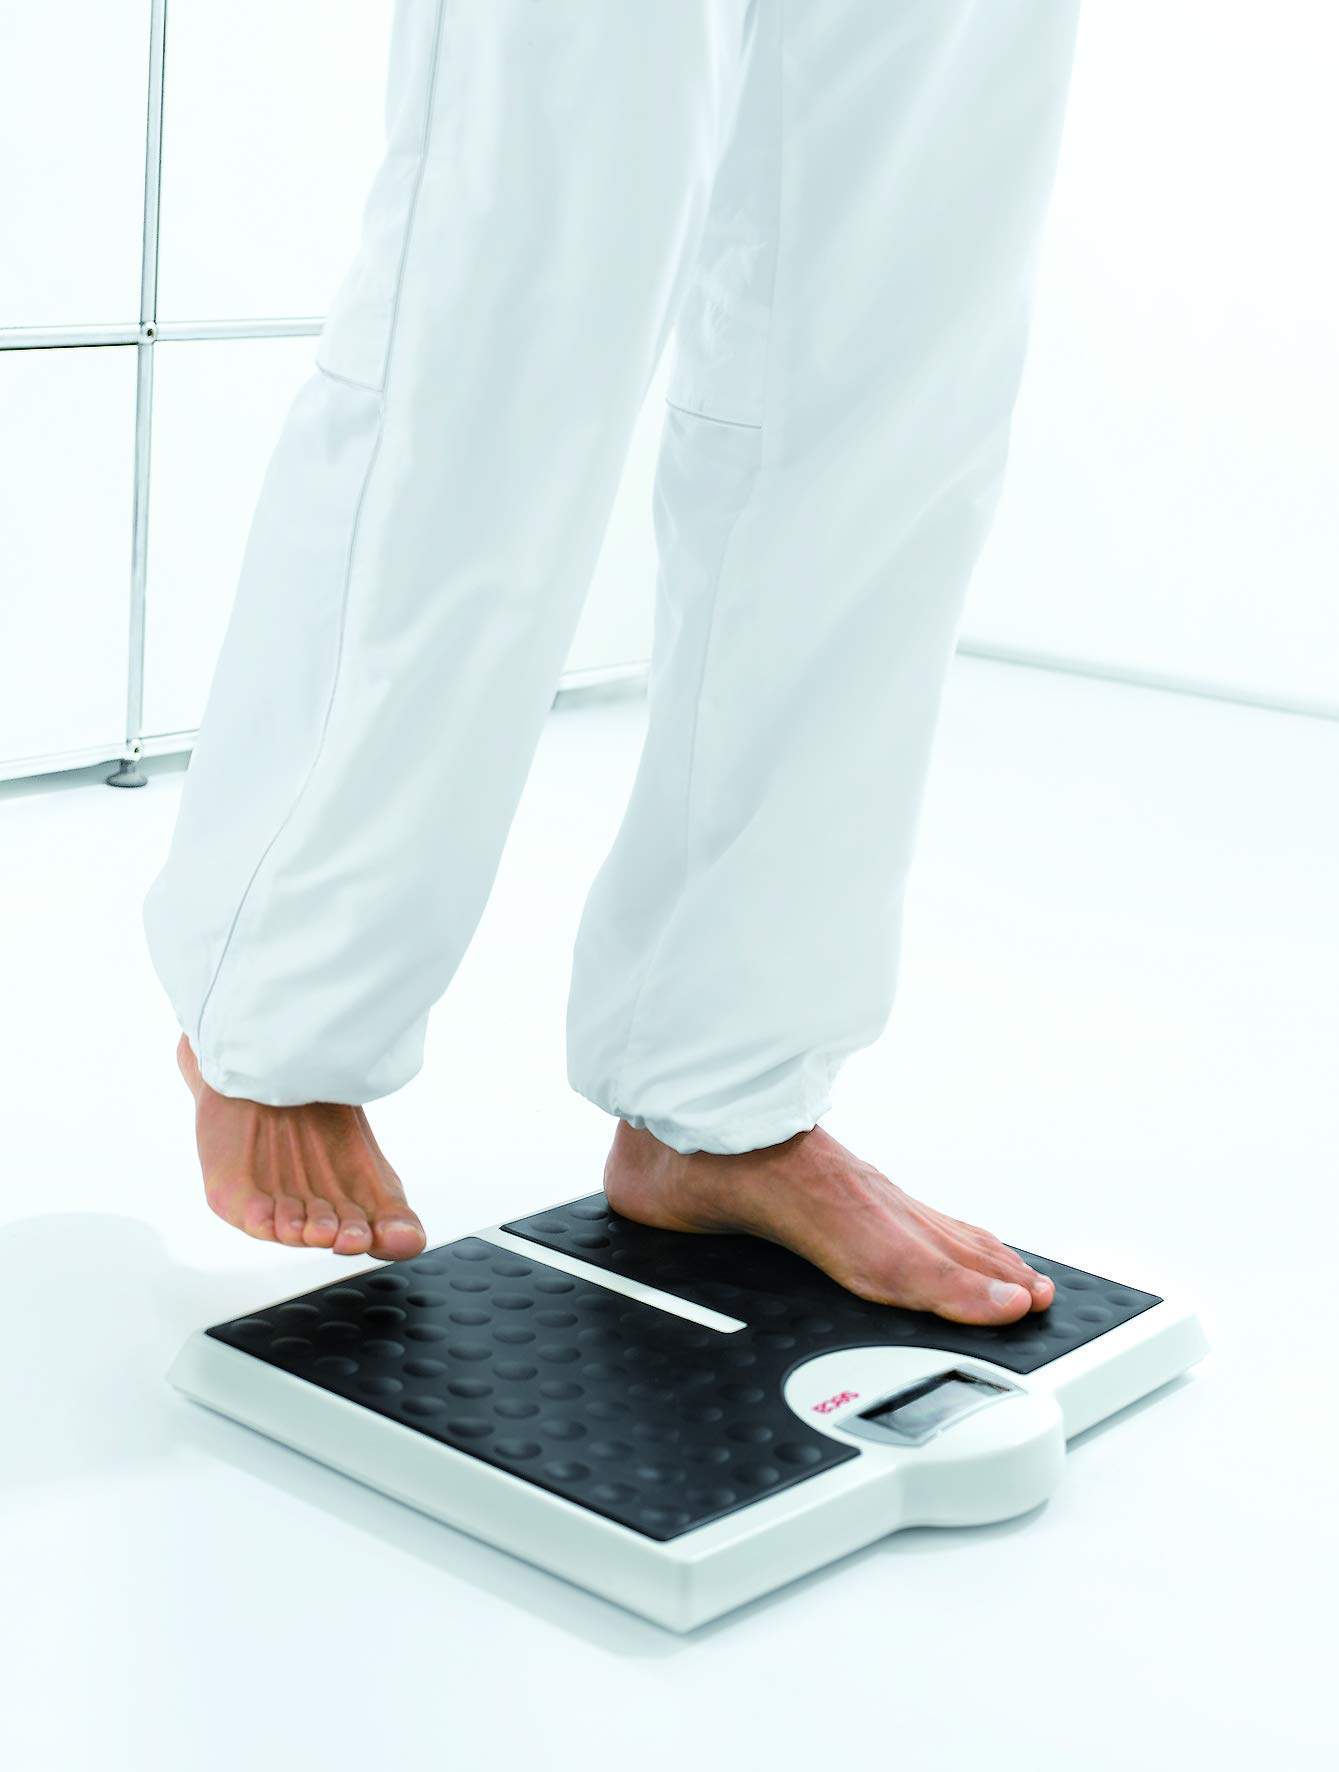 seca 813 High Capacity Digital Flat Scale for Individual Patient Use. by seca